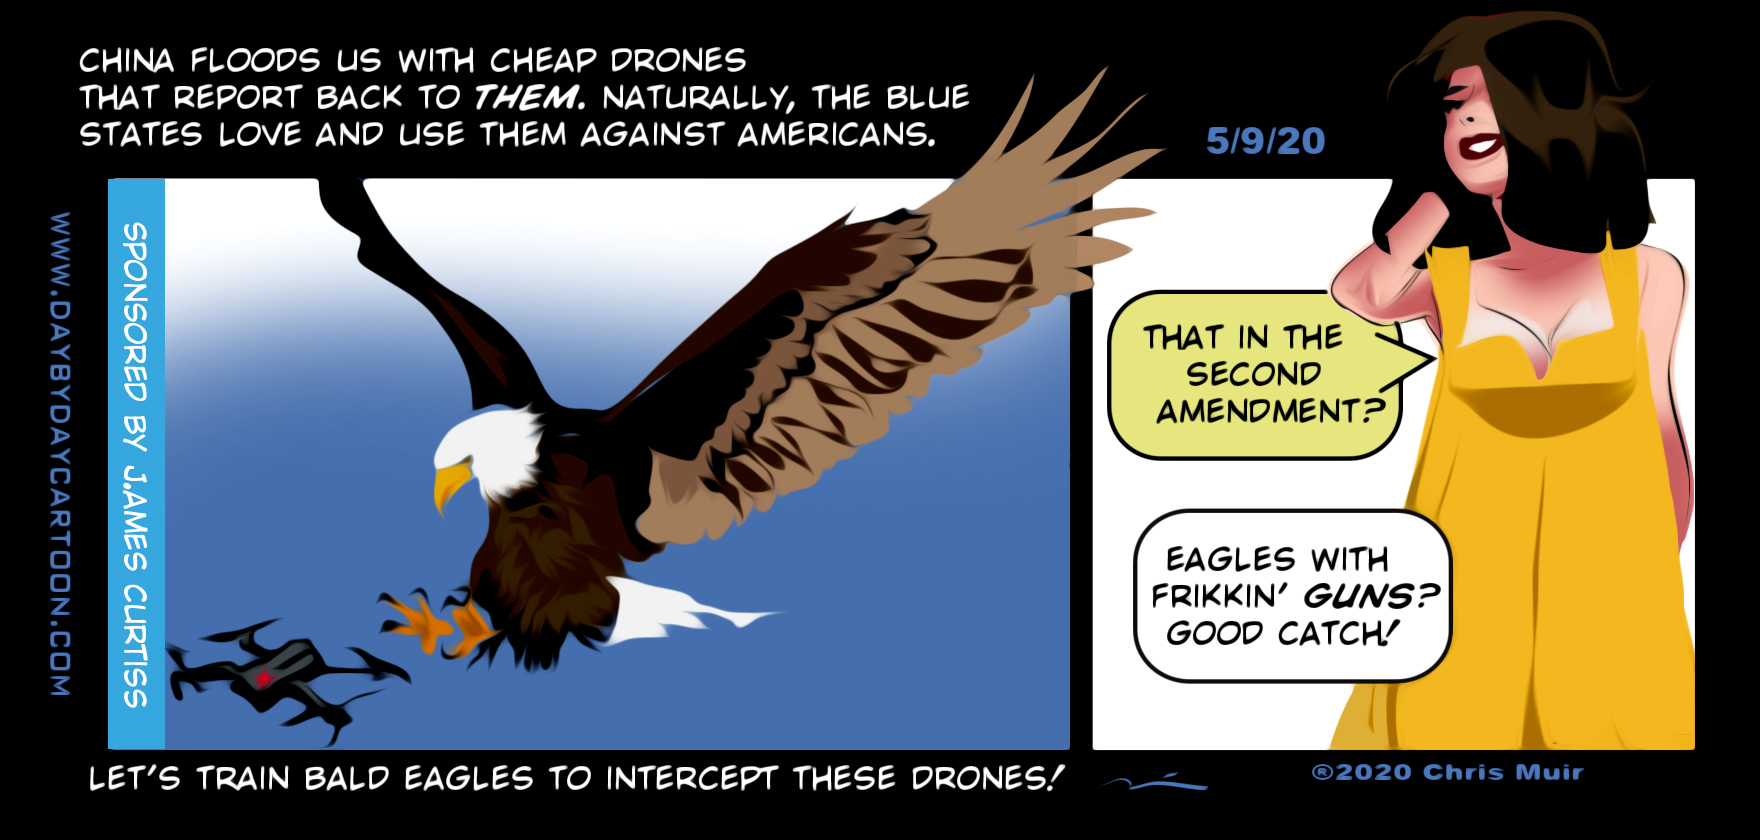 Eagles with Frikkin Guns. www.daybydaycartoon.com